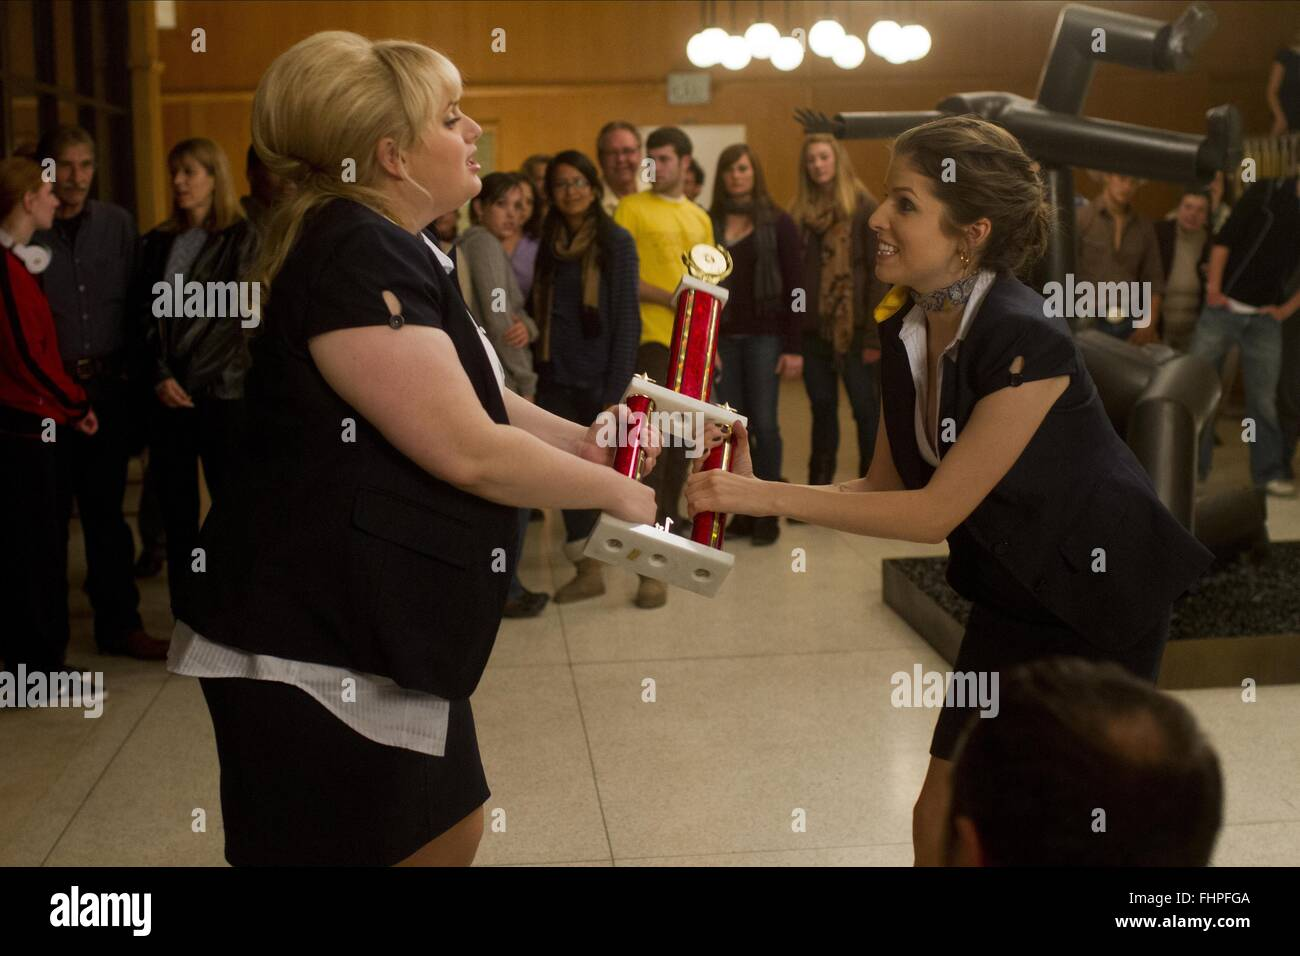 Anna Kendrick Pitch Perfect - 2012 HD new images